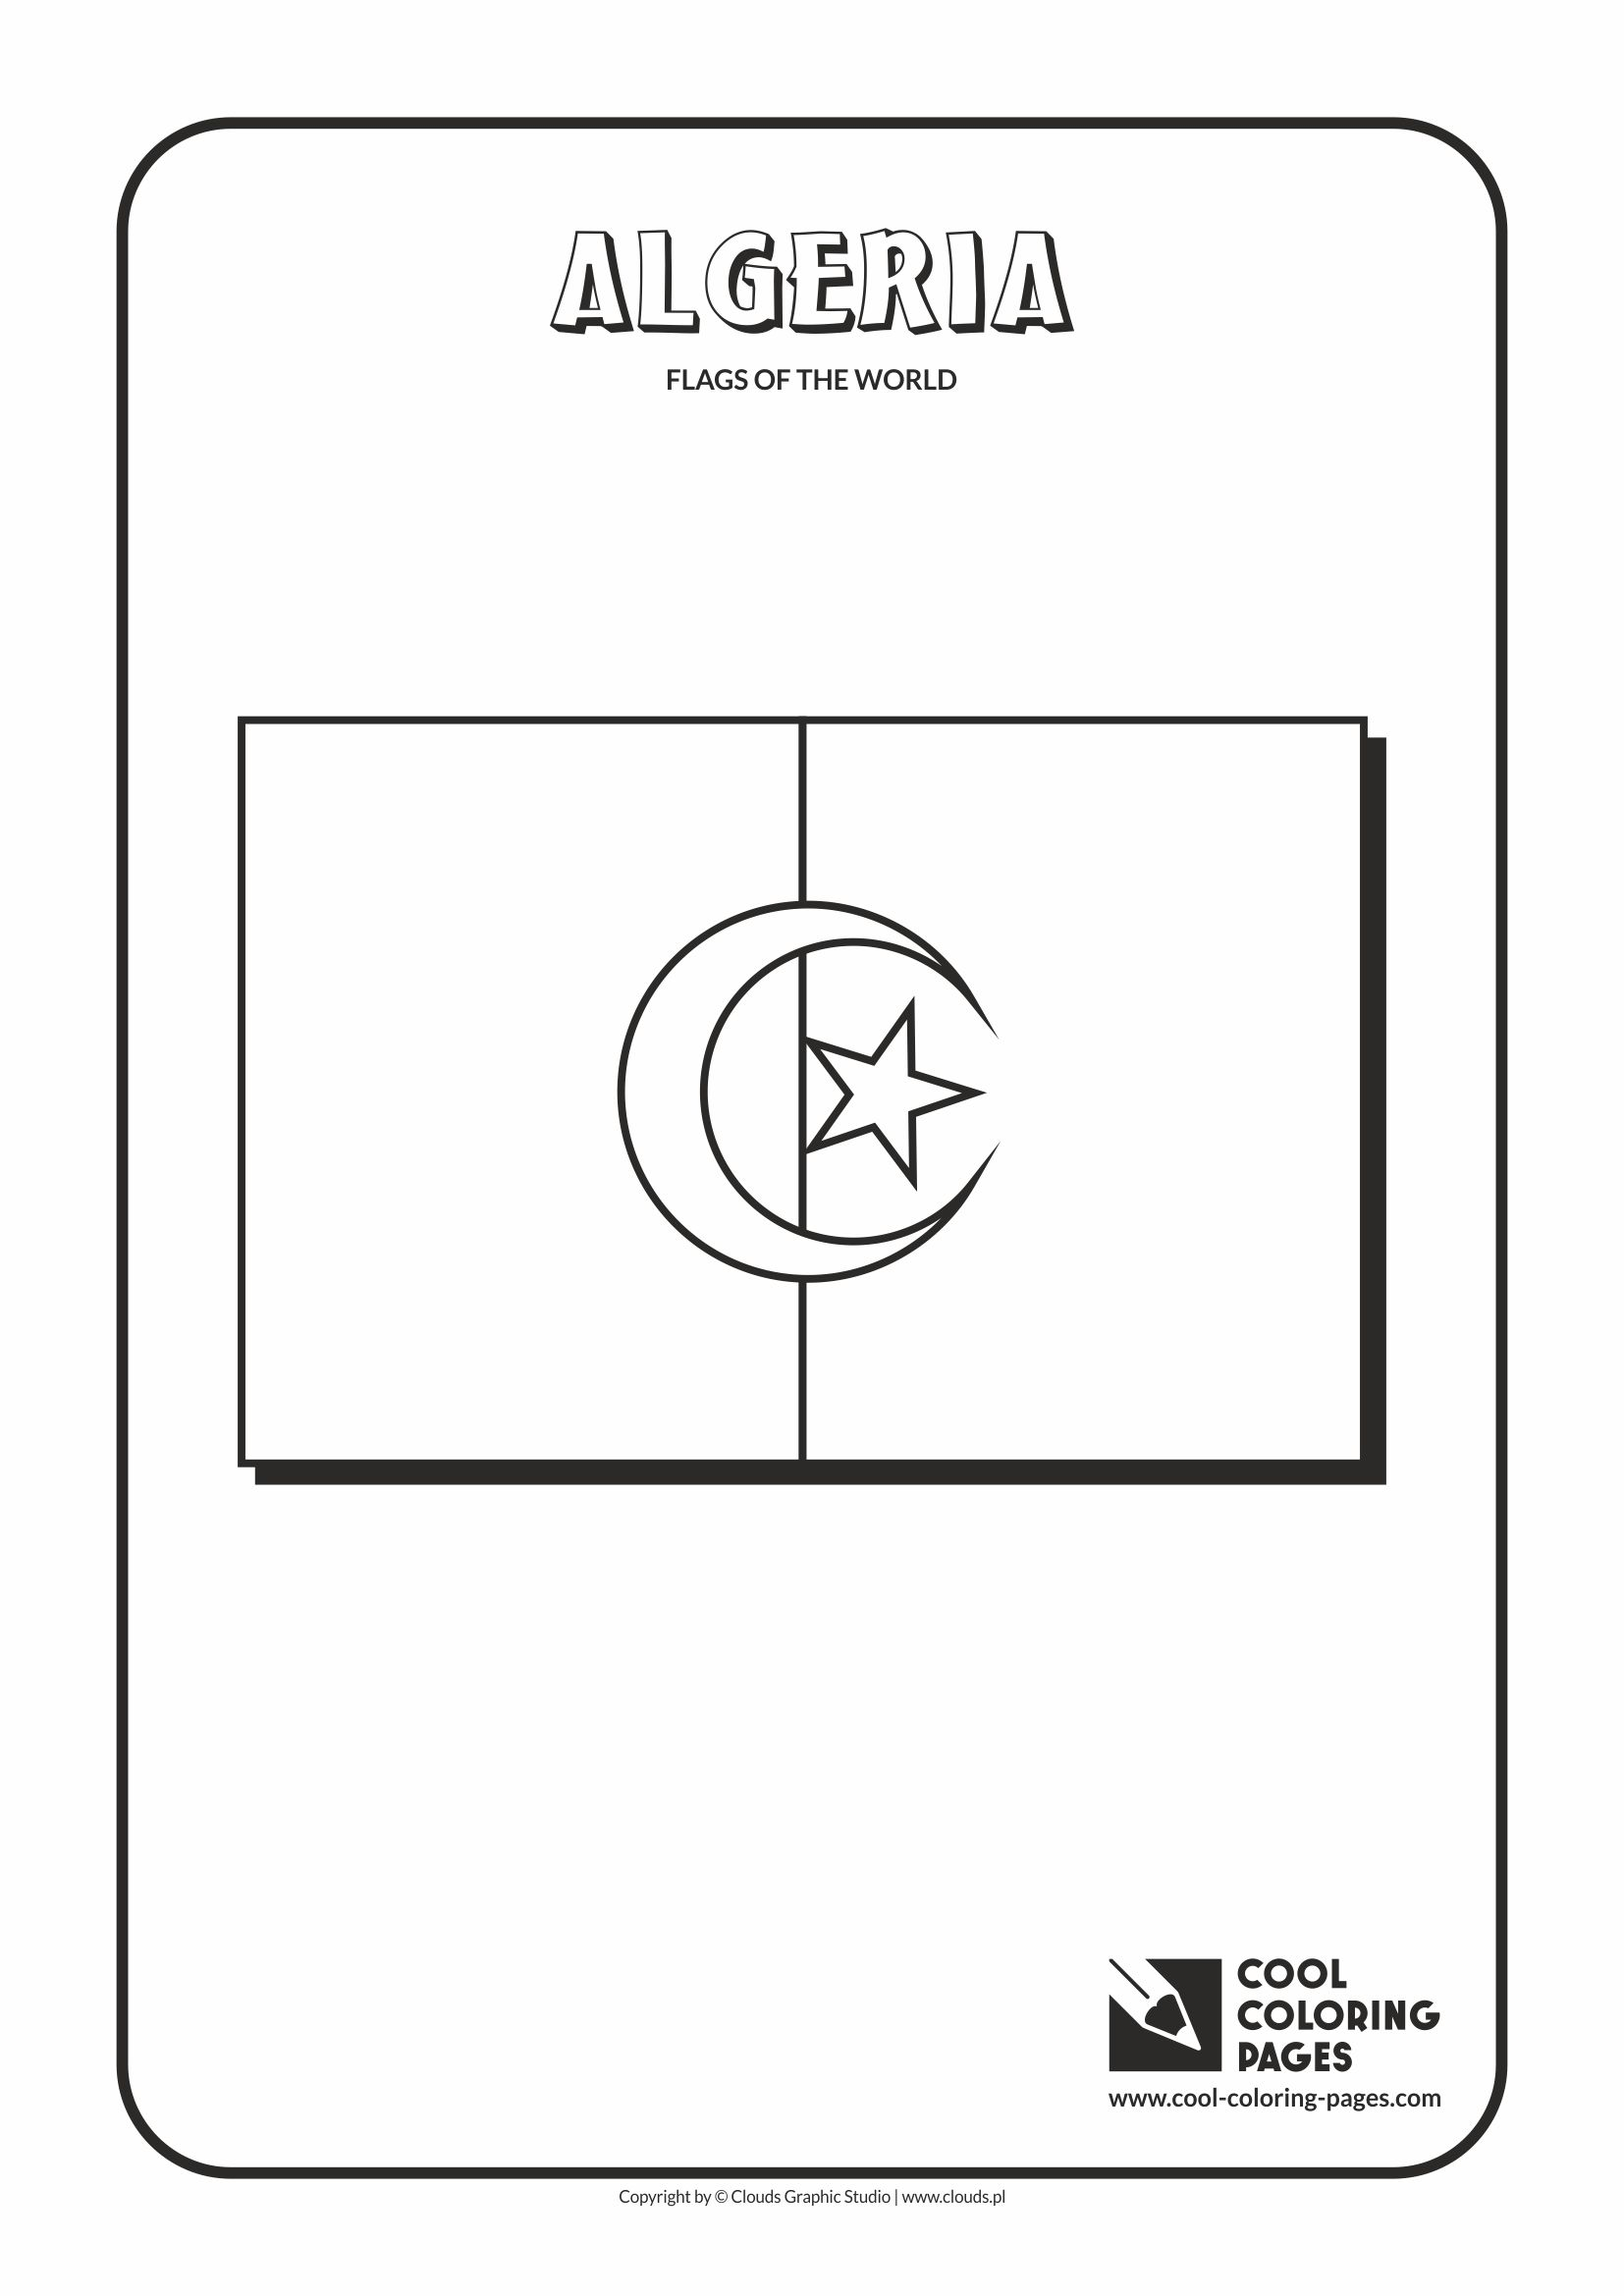 Cool Coloring Pages - Flags of the world / Algeria flag